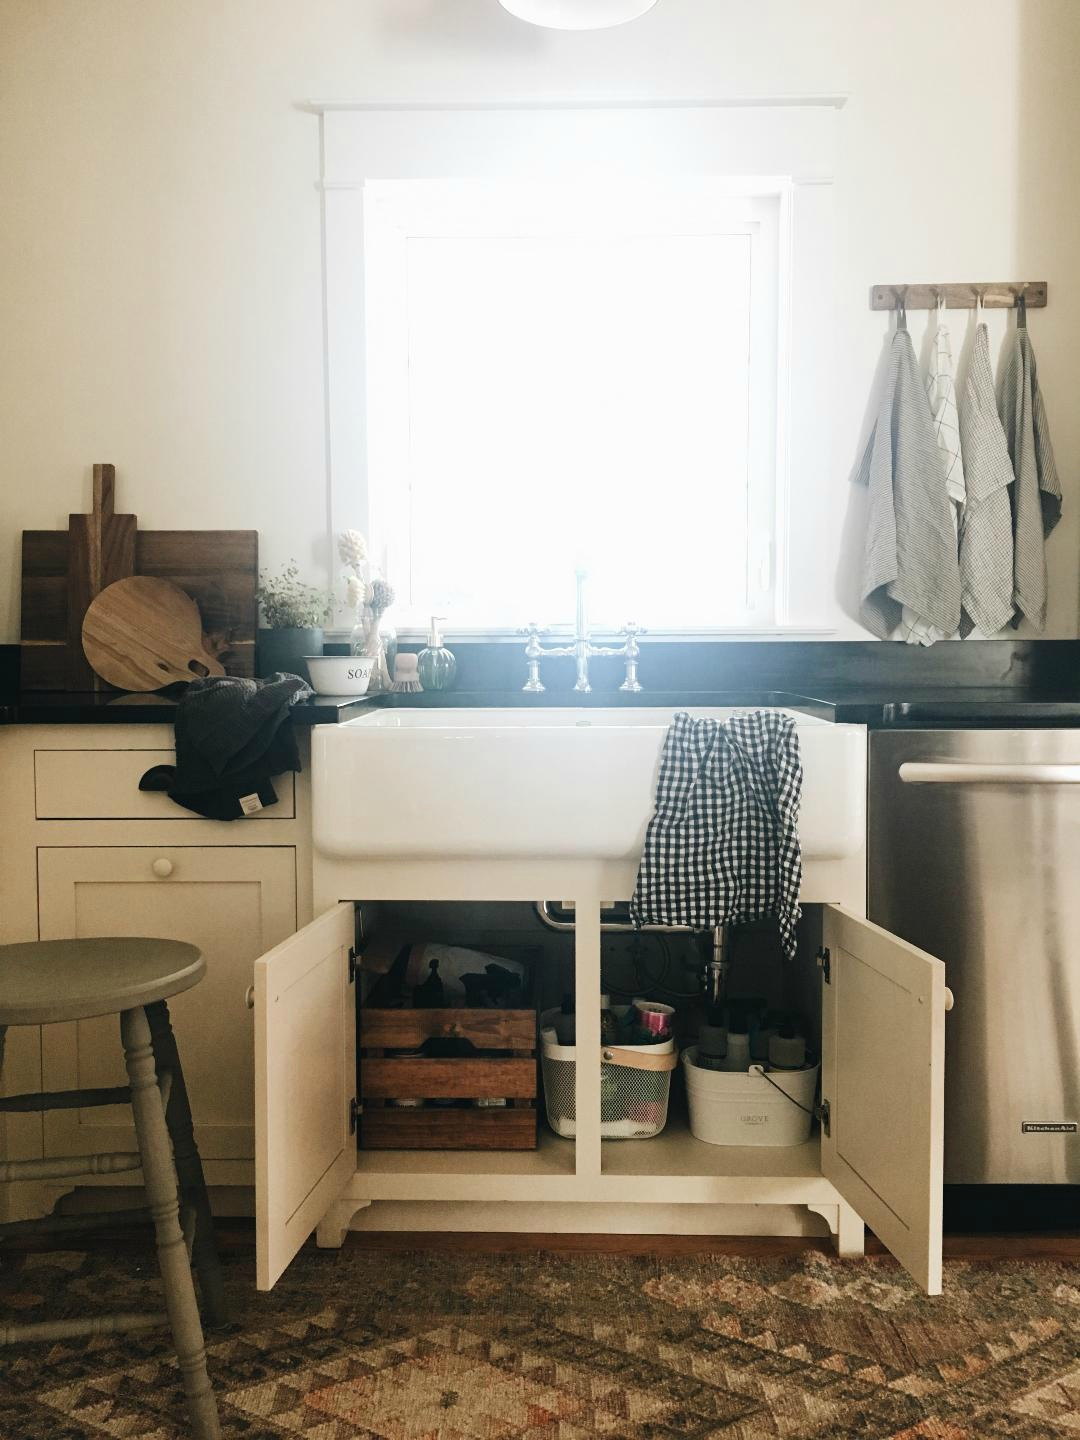 Small Space Living Series- 110 sq ft Kitchen Tour - Nesting With Grace